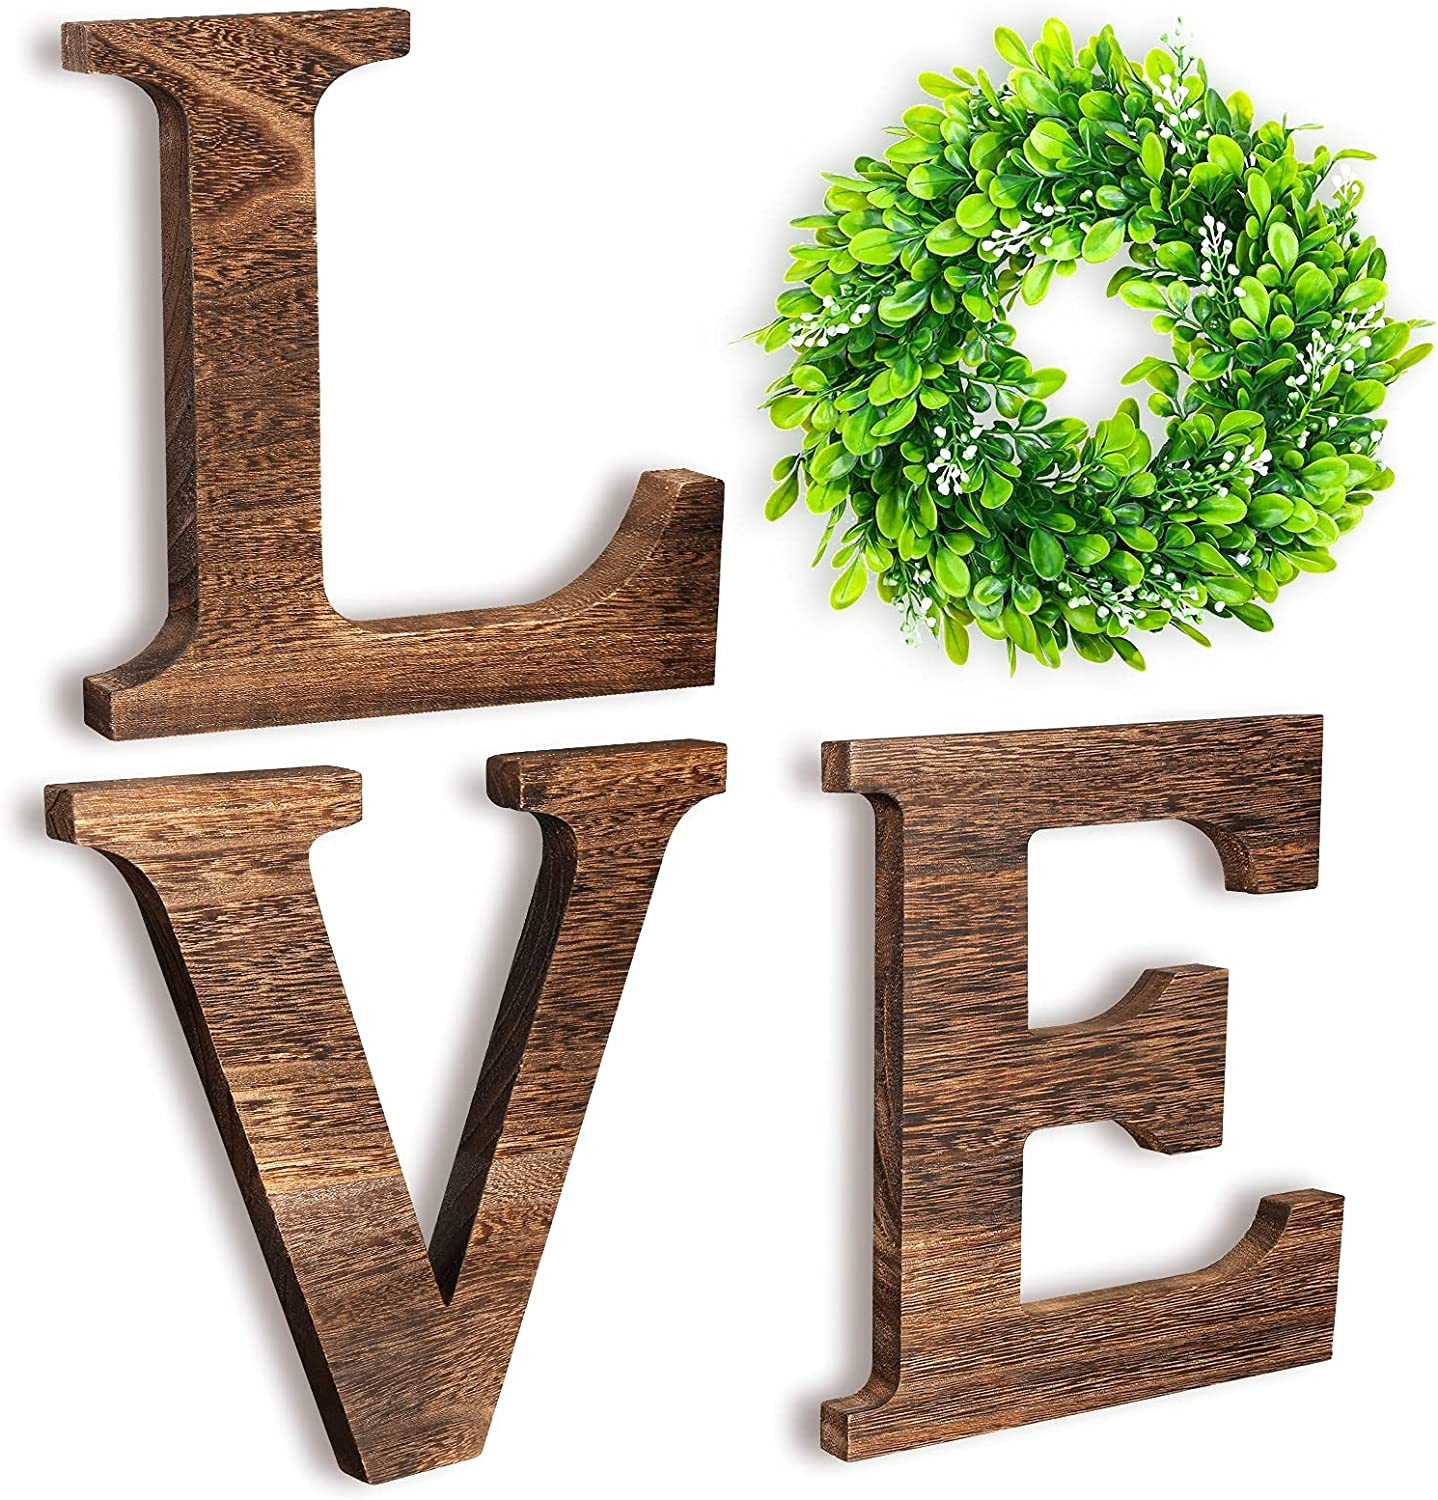 Wooden Love Home Sign with Artificial Wreath for Farmhouse Wall Decor, Rustic Hanging Love Wood Letters Decoration (Brown)